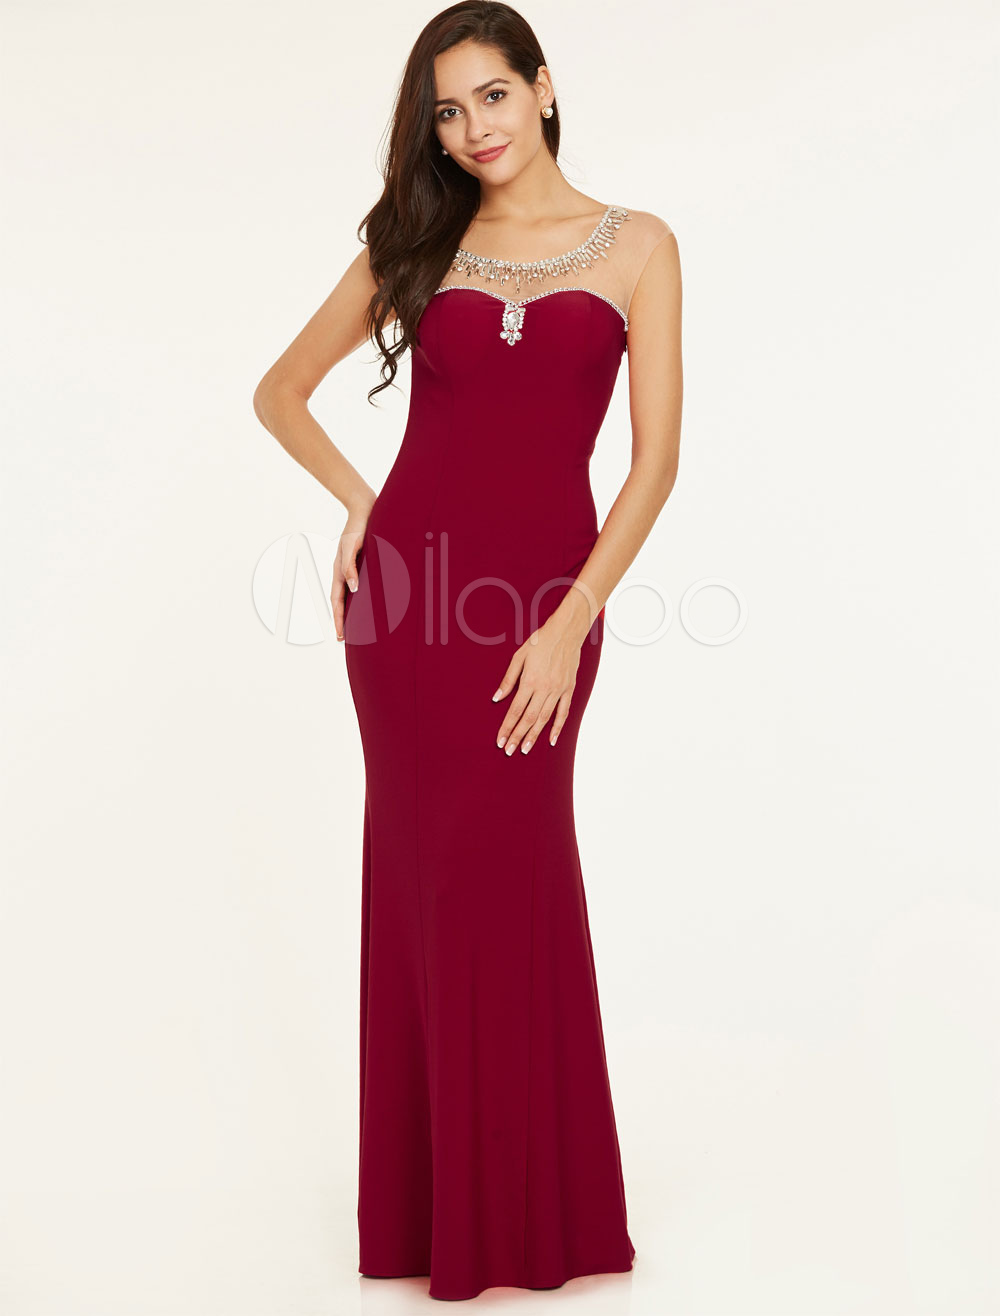 Buy Prom Dresses Long Burgundy Mermaid Backless Evening Gowns Illusion Beading Jewel Neck Floor Length Formal Dress for $87.99 in Milanoo store